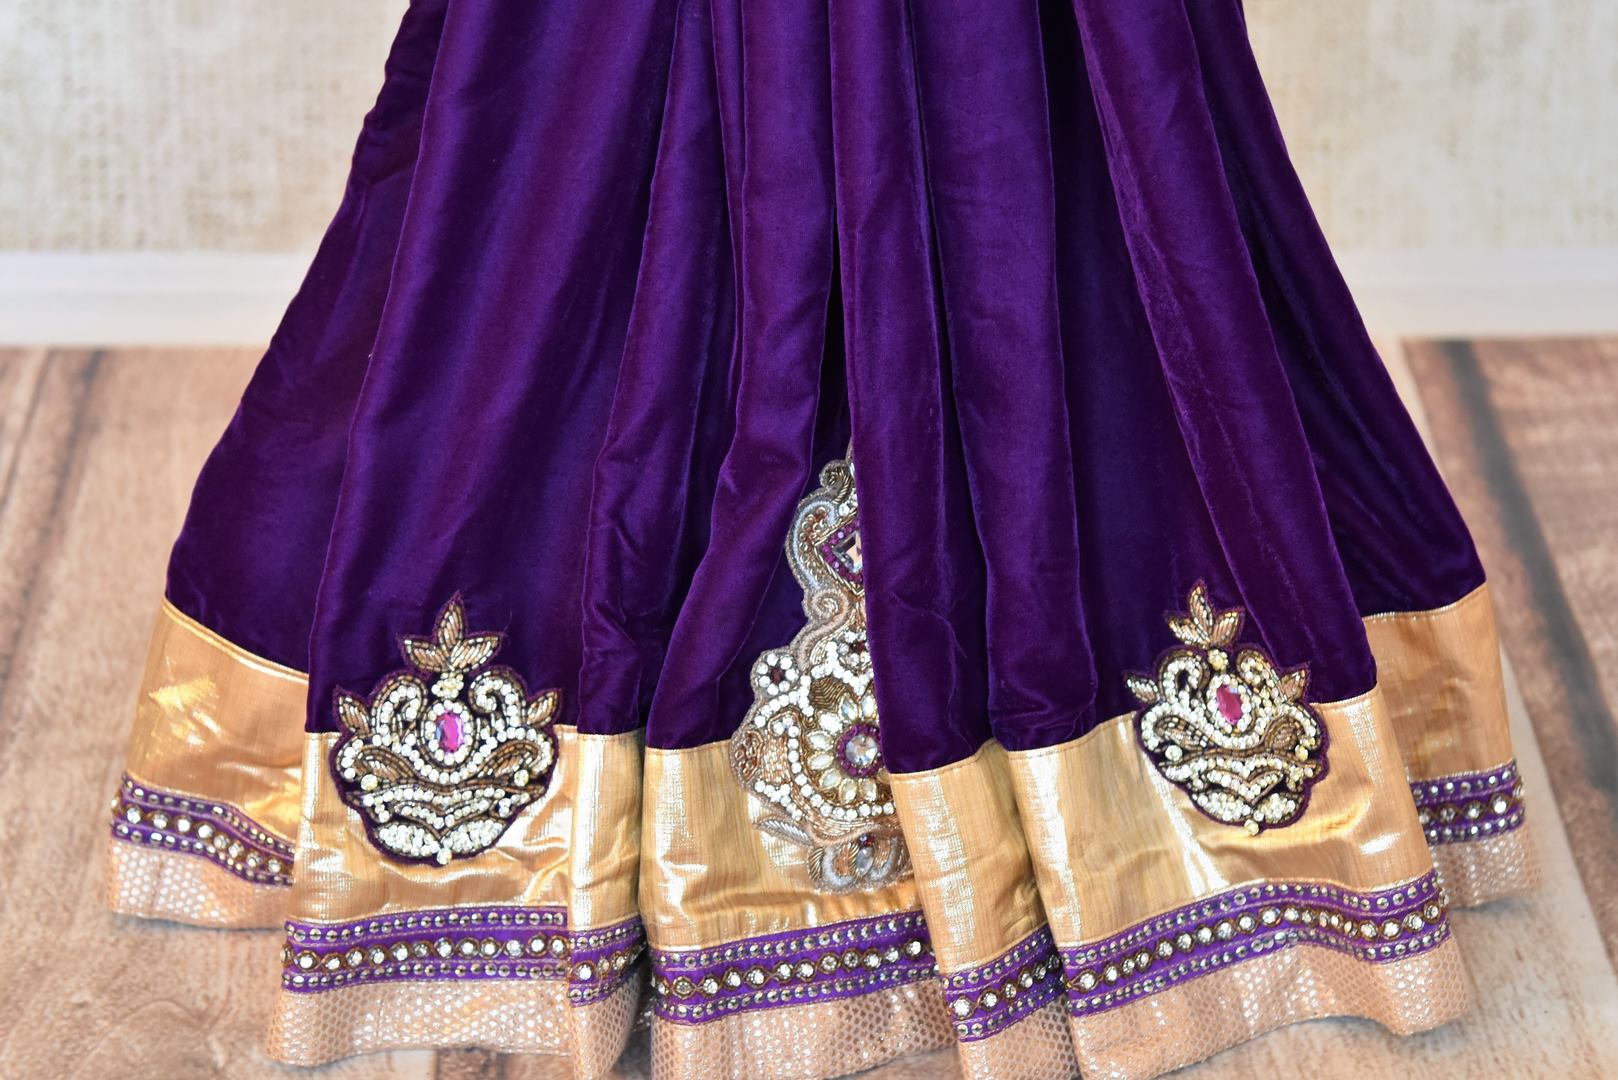 Shop designer purple embroidered shimmer saree online in USA. Shop more such exquisite Indian saris in USA from Pure Elegance. Get floored by a range of designer sarees, pure silk sarees, Kanchipuram silk saris at our Indian fashion store in USA.-pleats